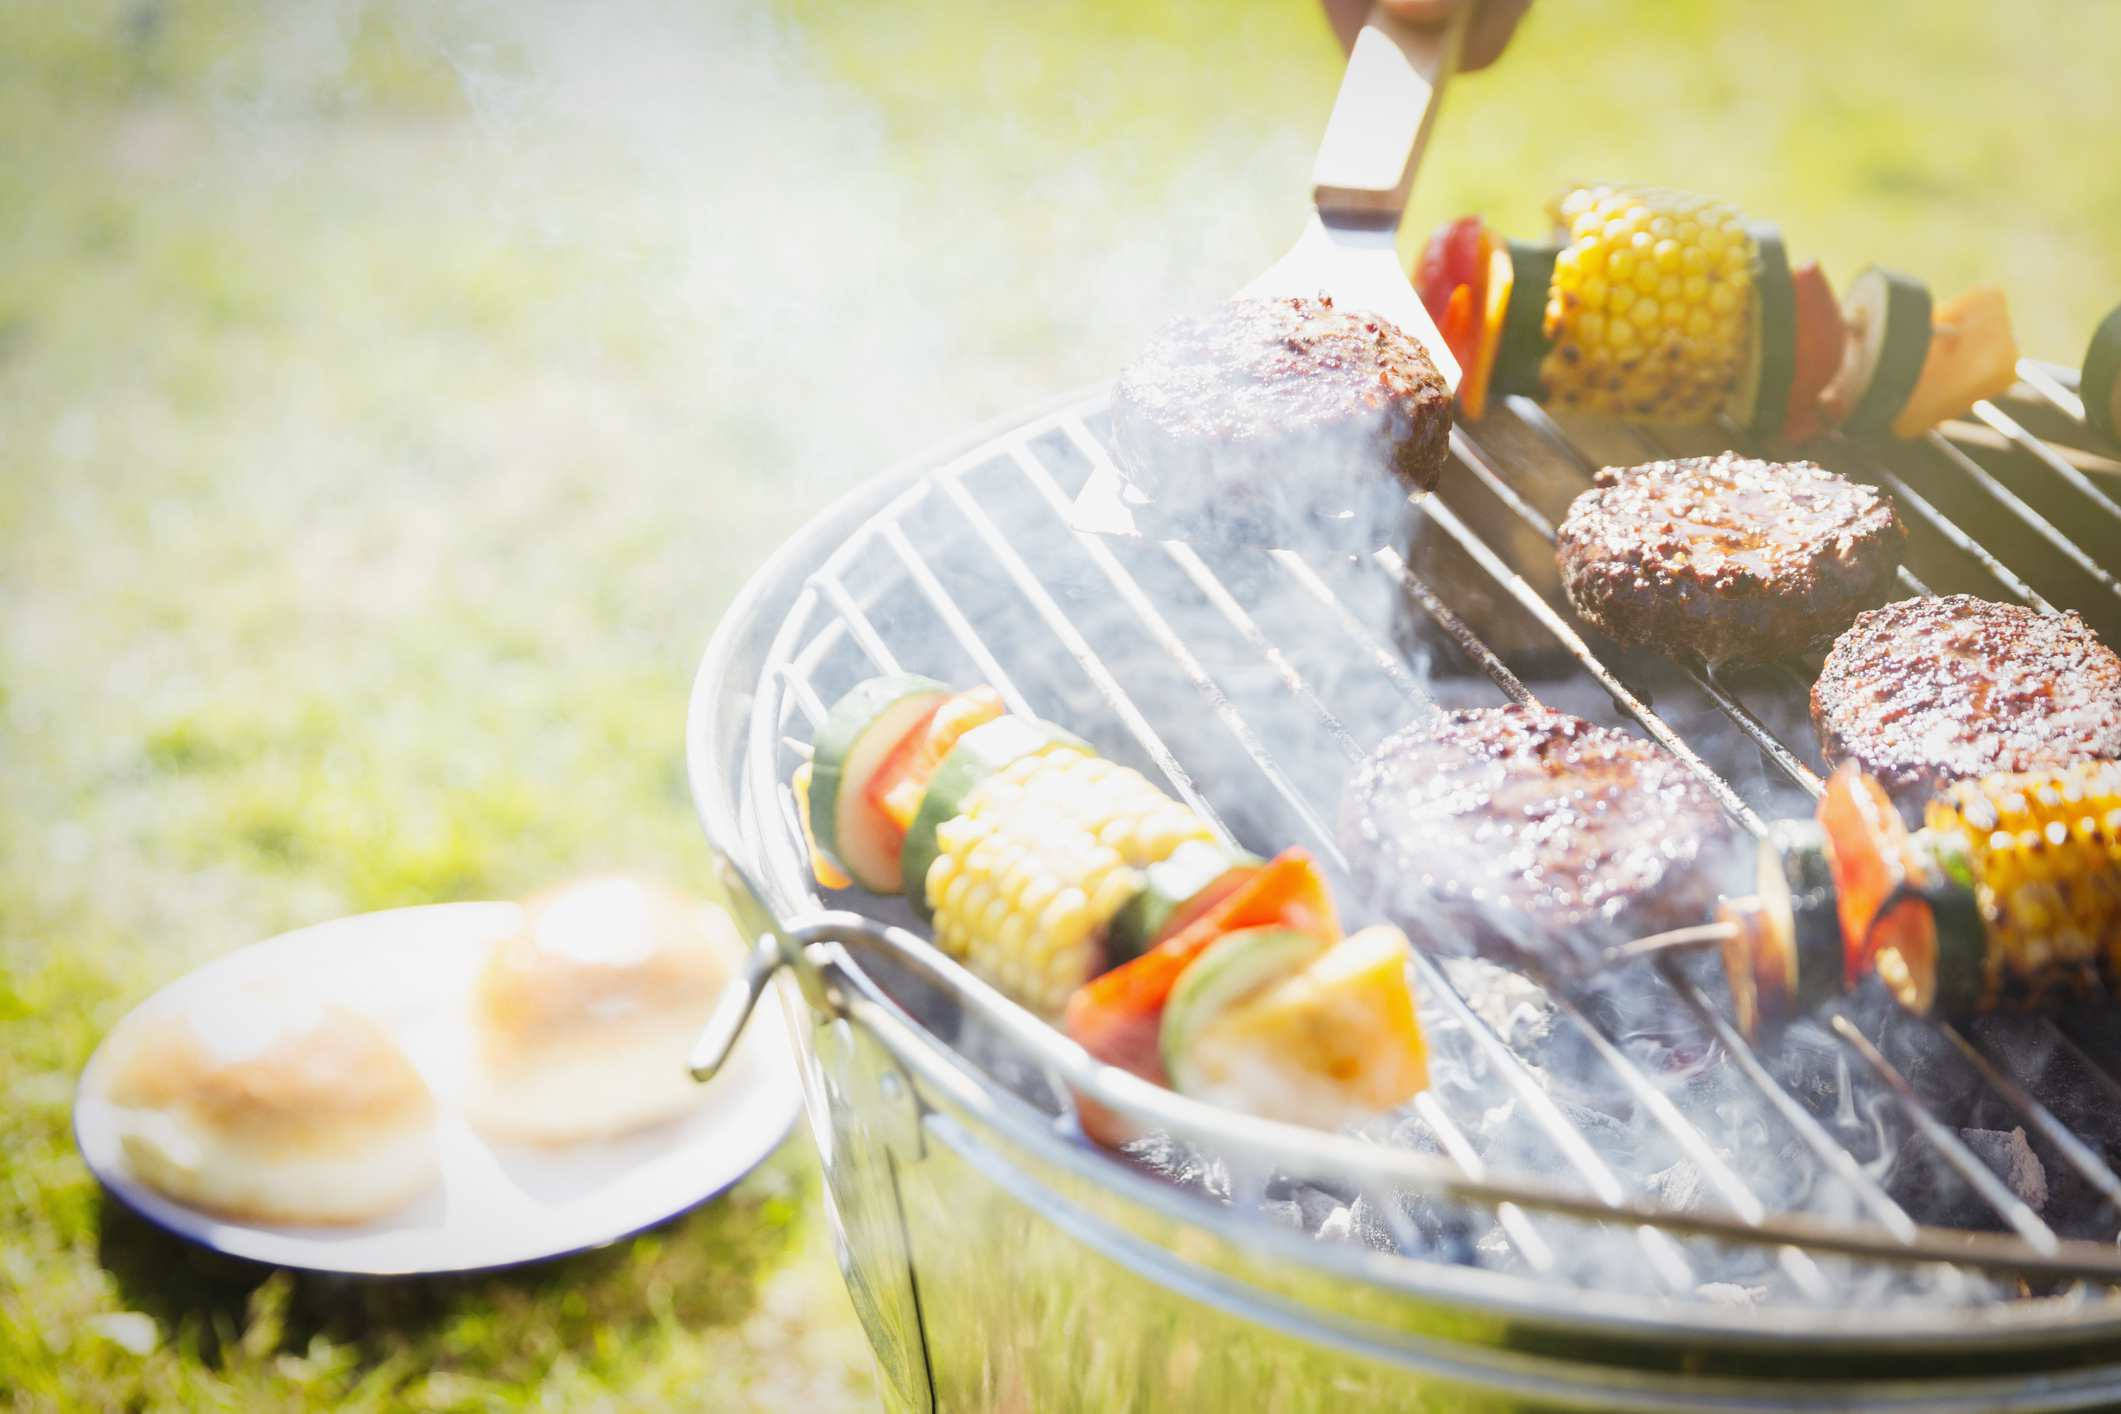 The Ultimate Cook-Out Menu and Party Checklist